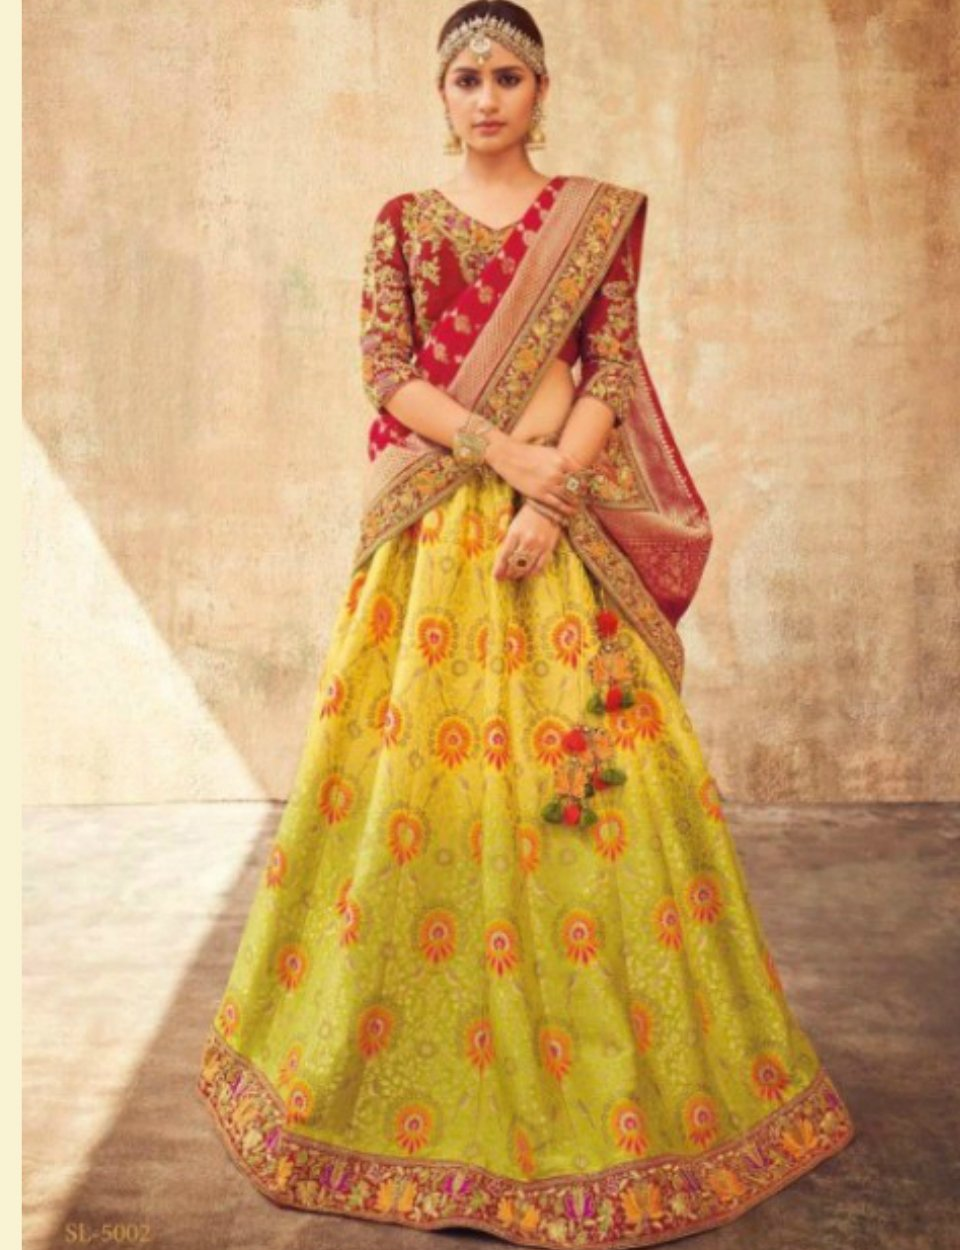 Stunning KIM5002 Designer Multicoloured Green Maroon Jacquard Silk Lehenga Choli by Fashion Nation